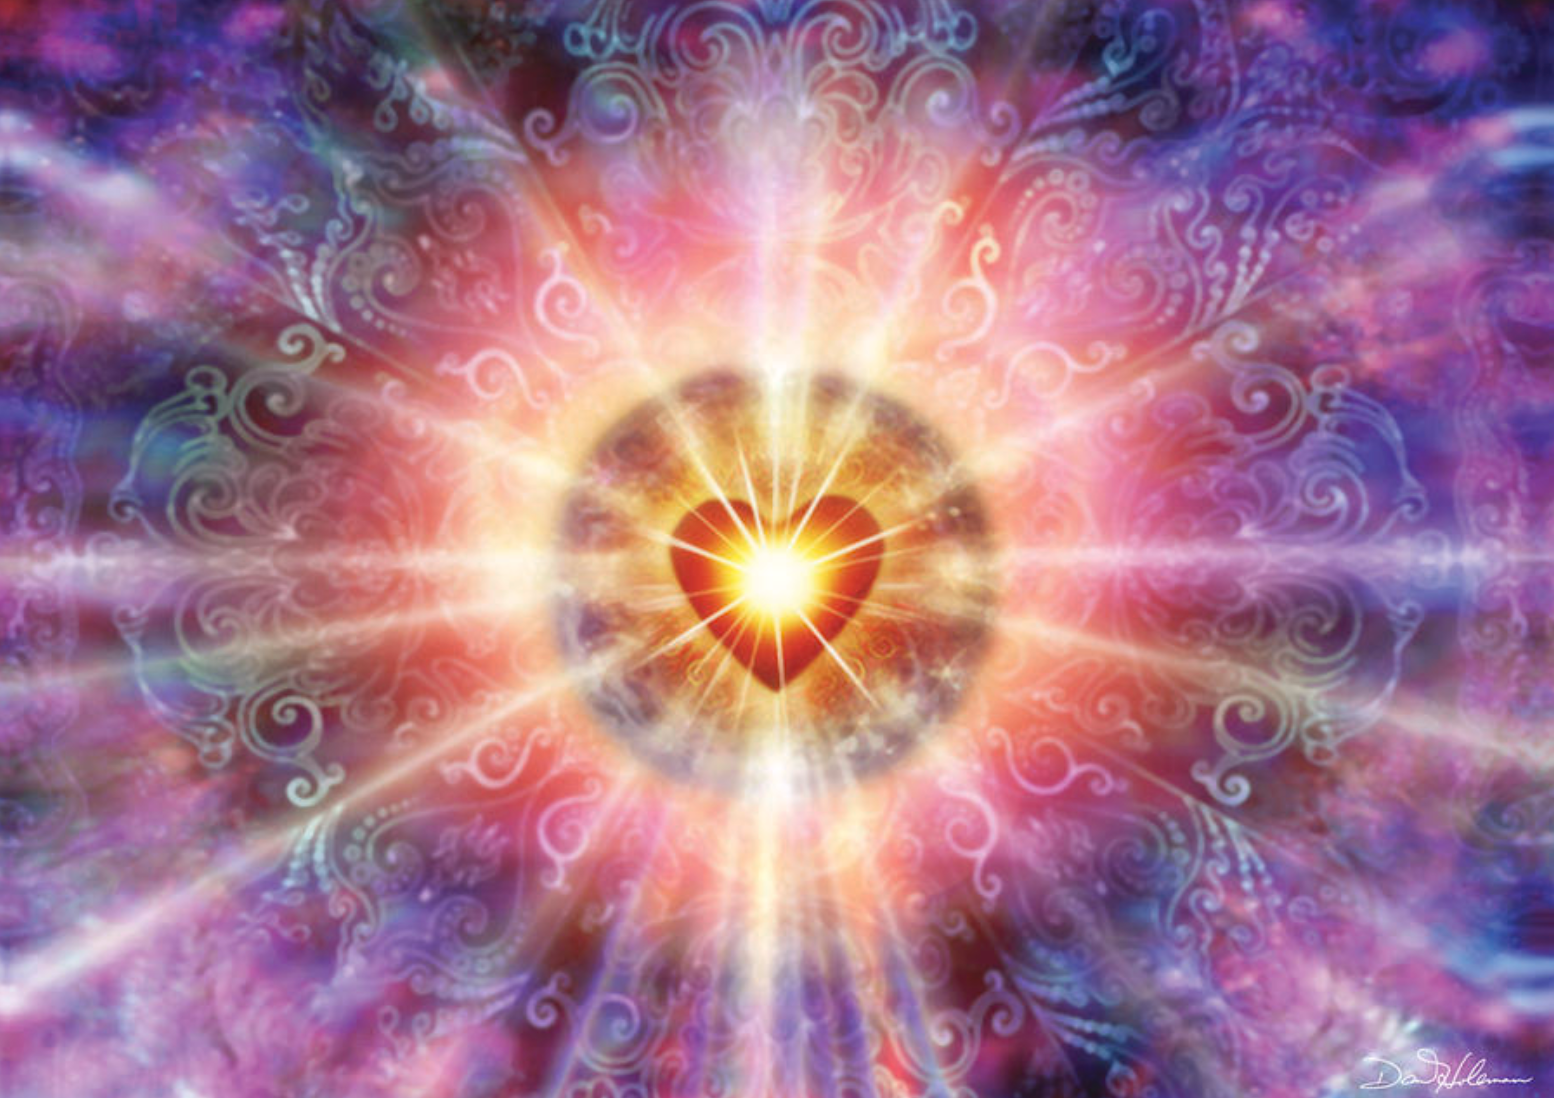 Sign up for my newsletter and be the first to know about my global healing events.